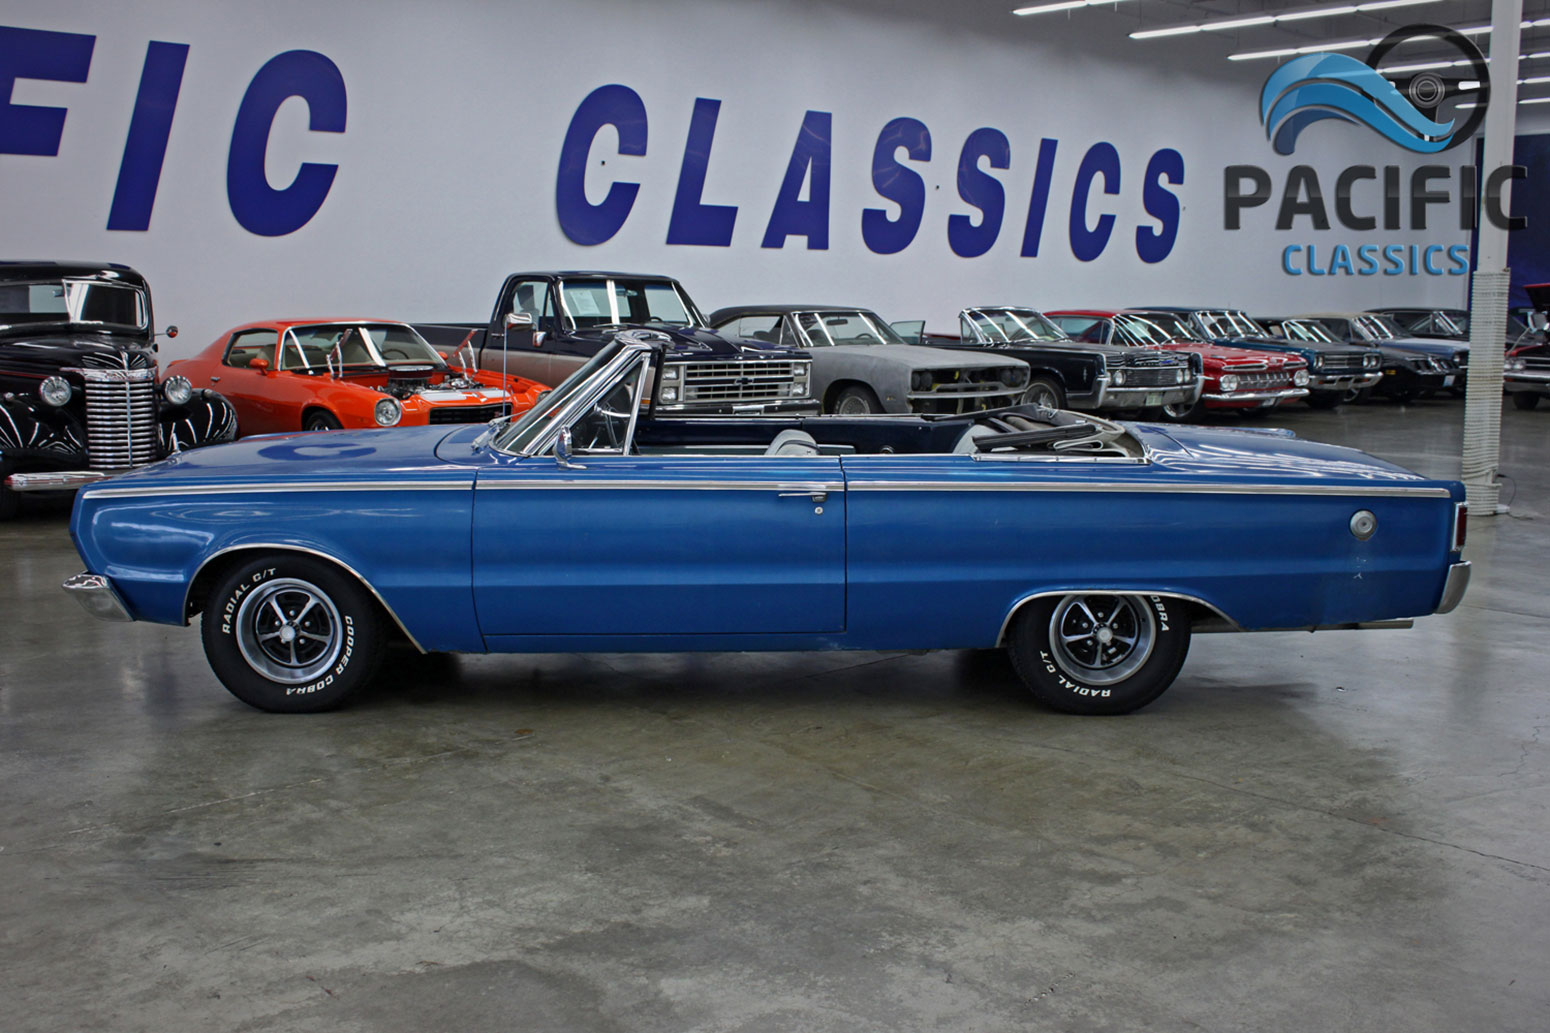 1967 Plymouth Belvedere Convertible